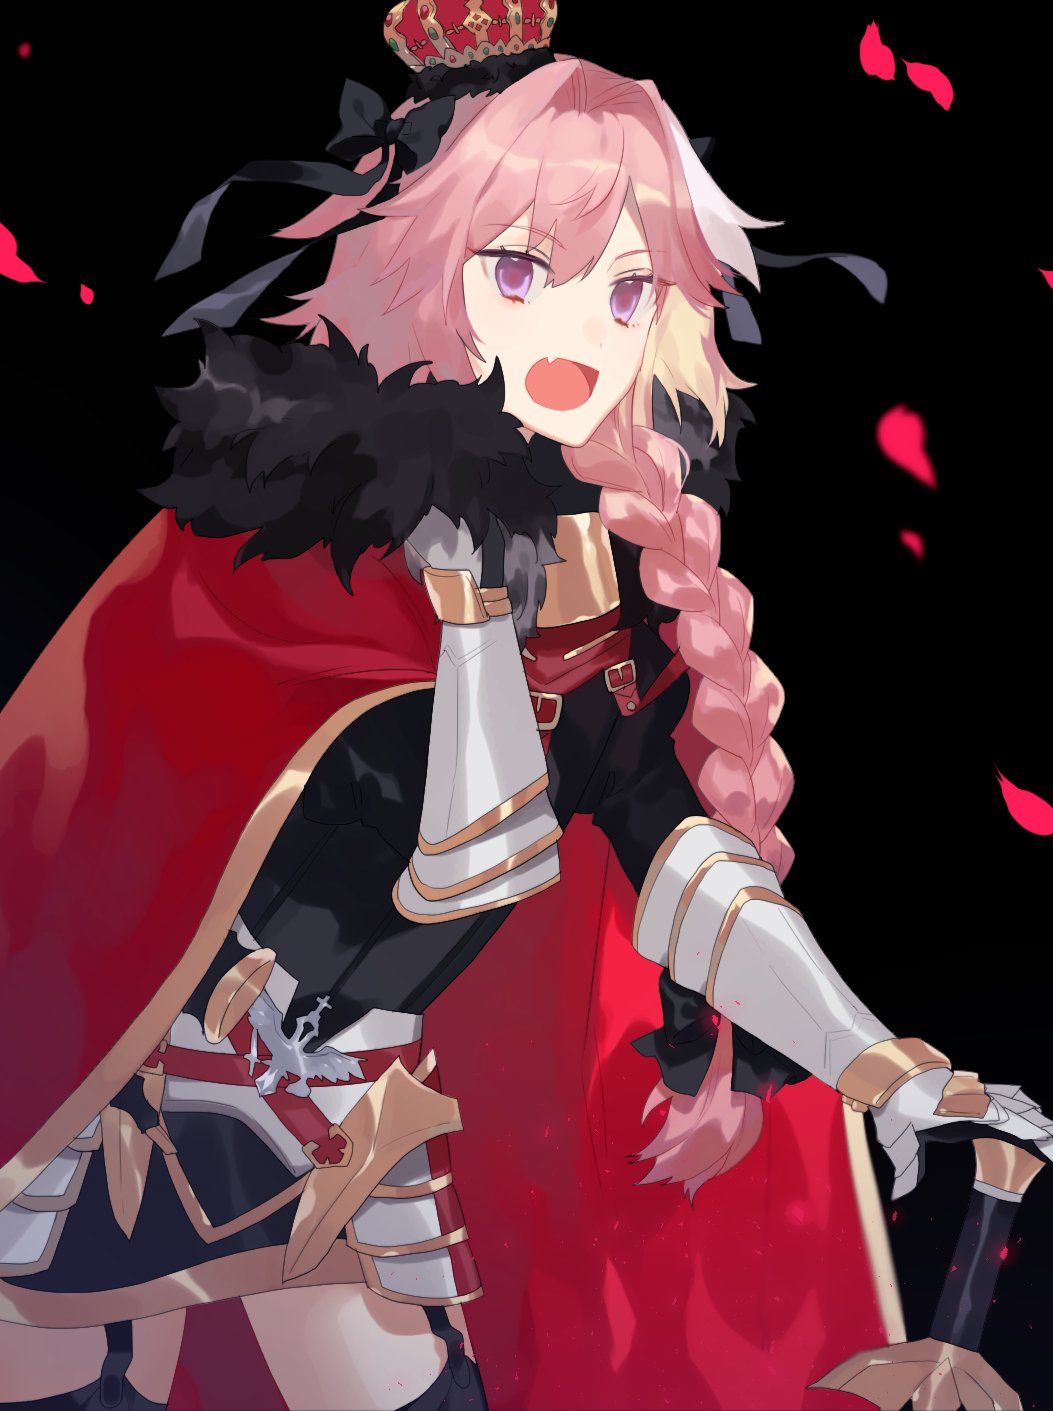 Pin by 京極 秋彦 on TYPE MOON Astolfo fate, One punch anime